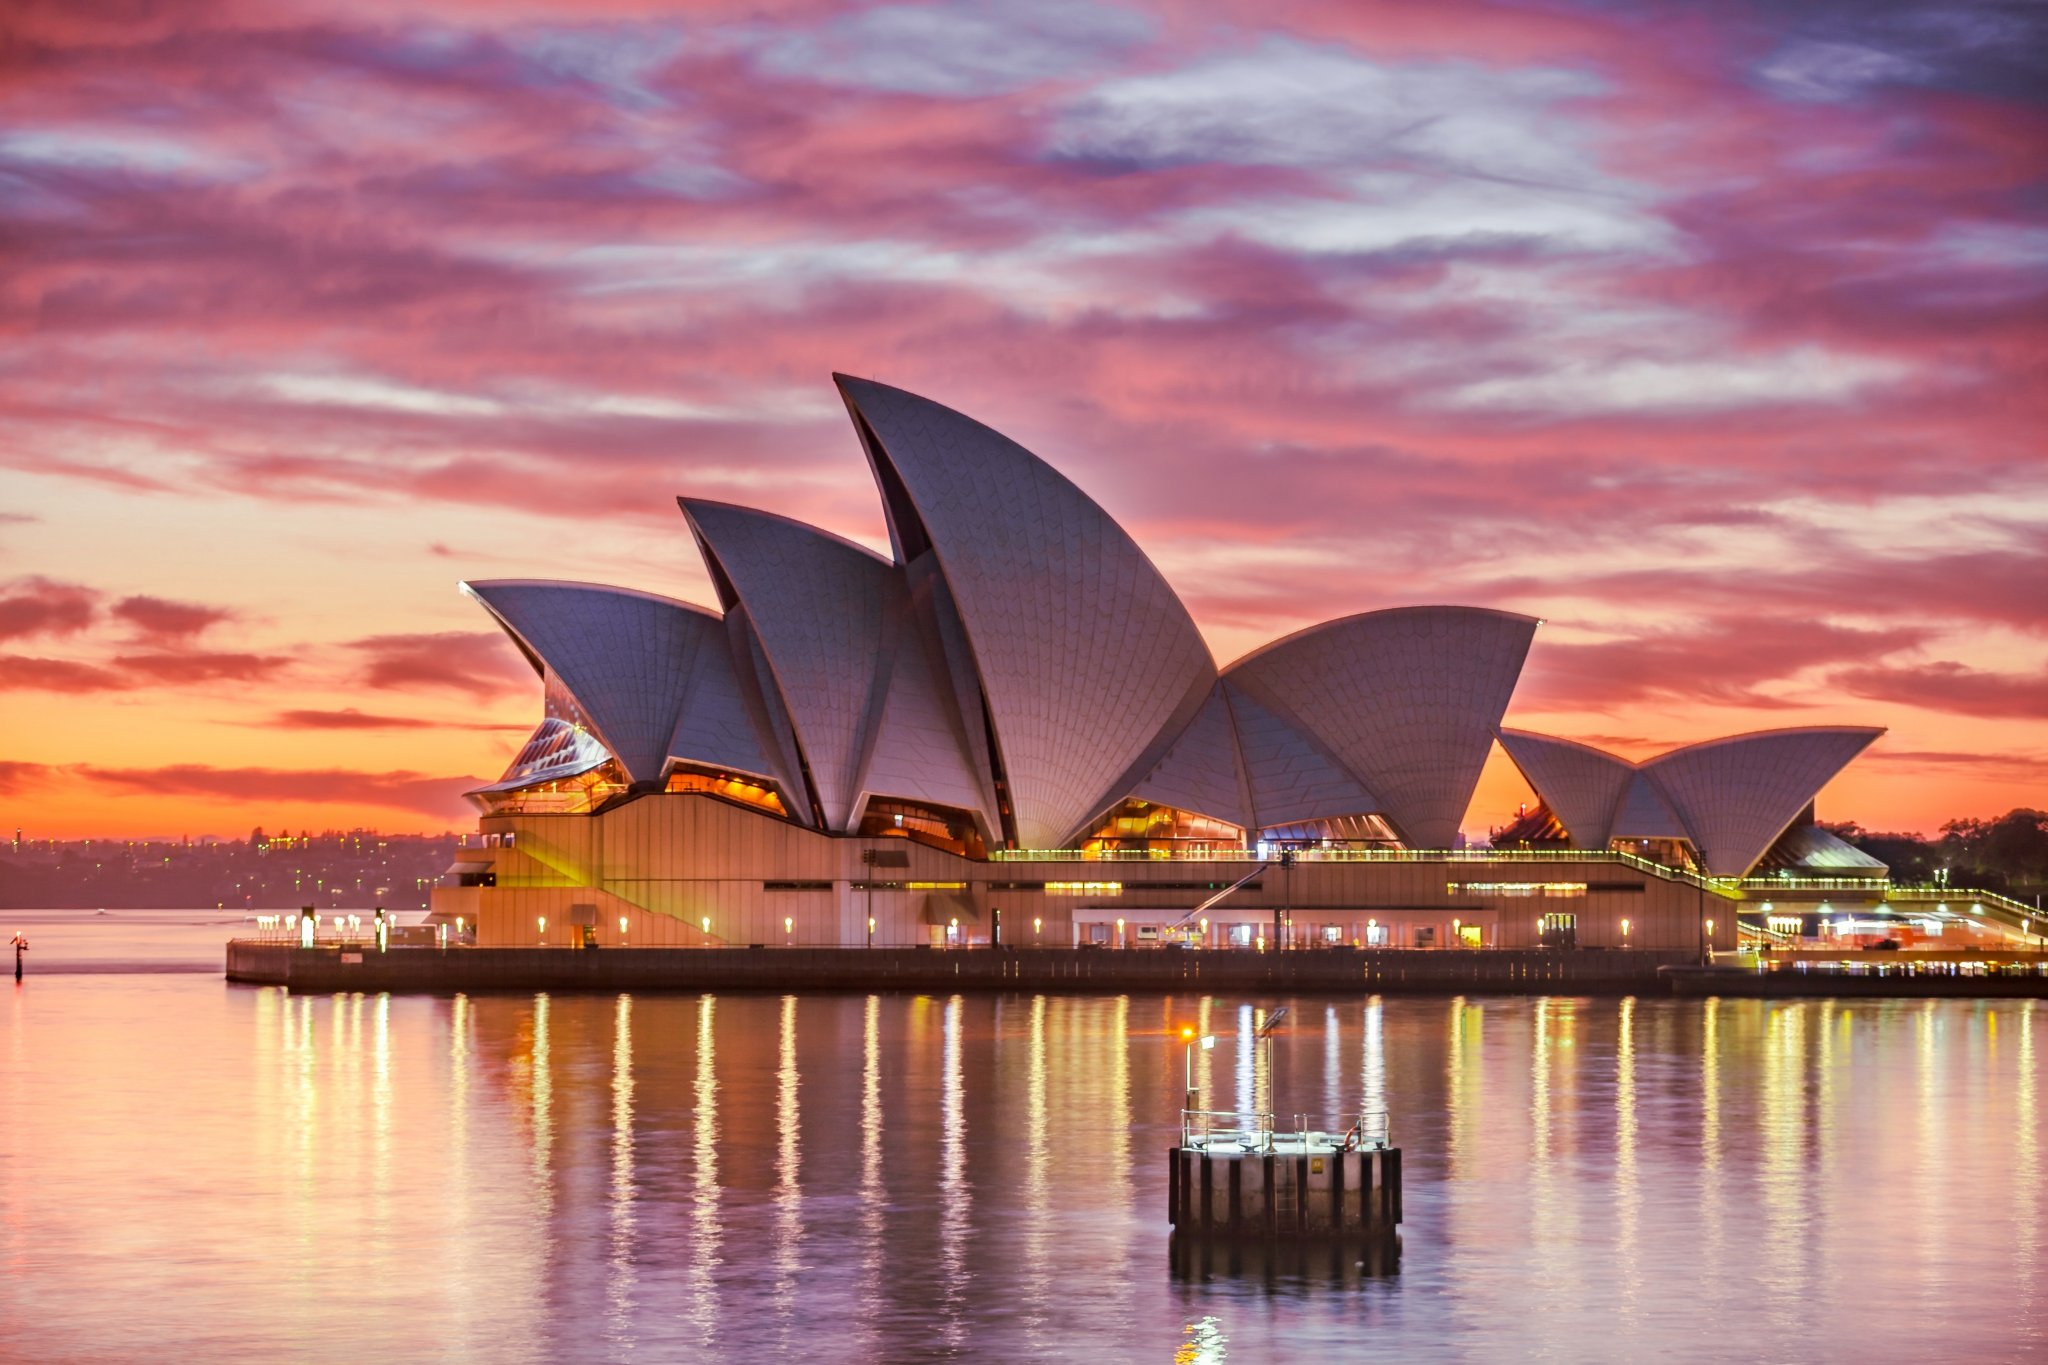 Sydney Colours of Australia